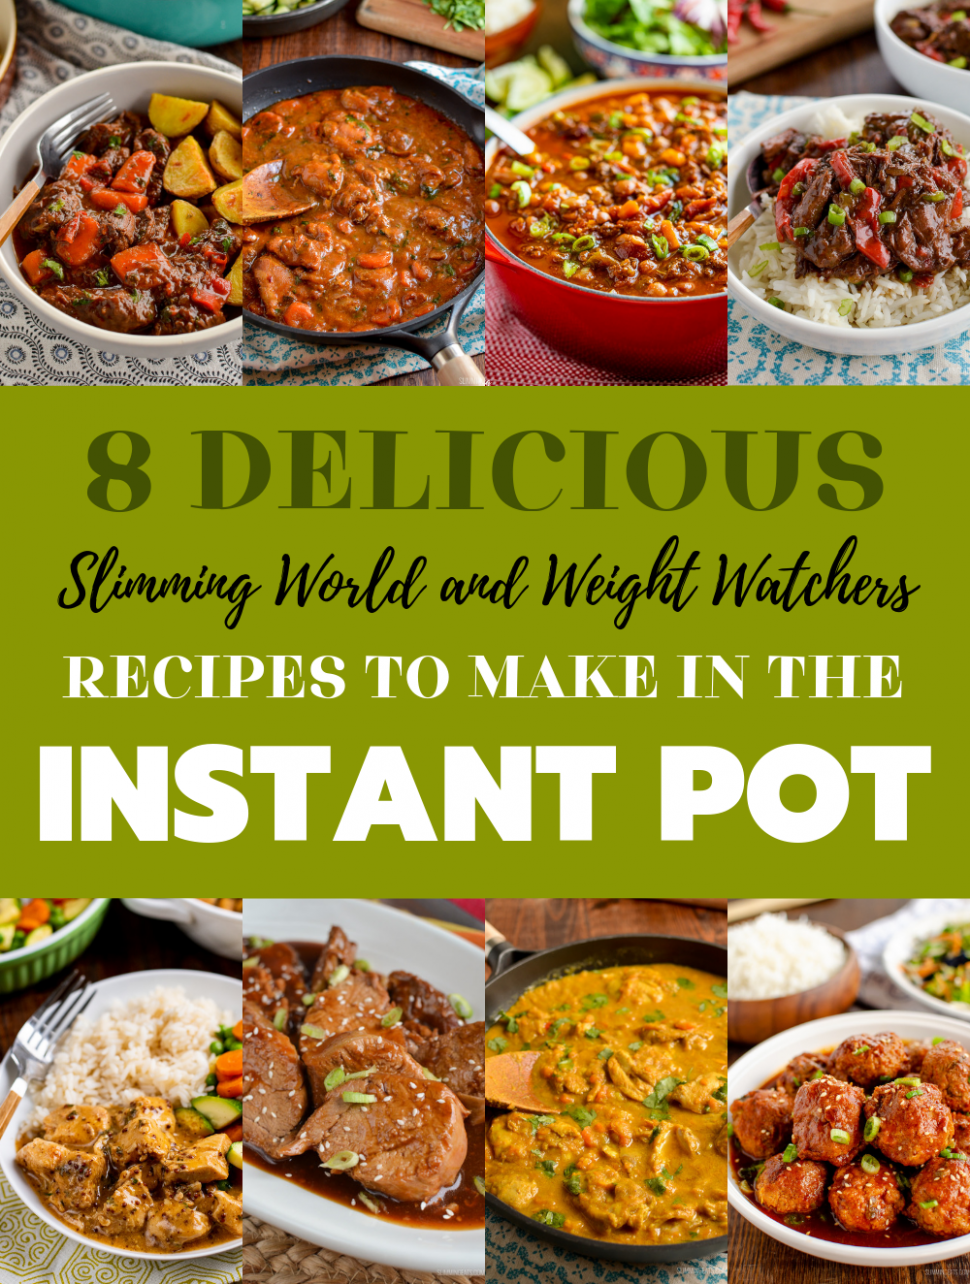 12 Must Try Instant Pot Recipes - Slimming World & Weight Watchers - Healthy Recipes Slimming World